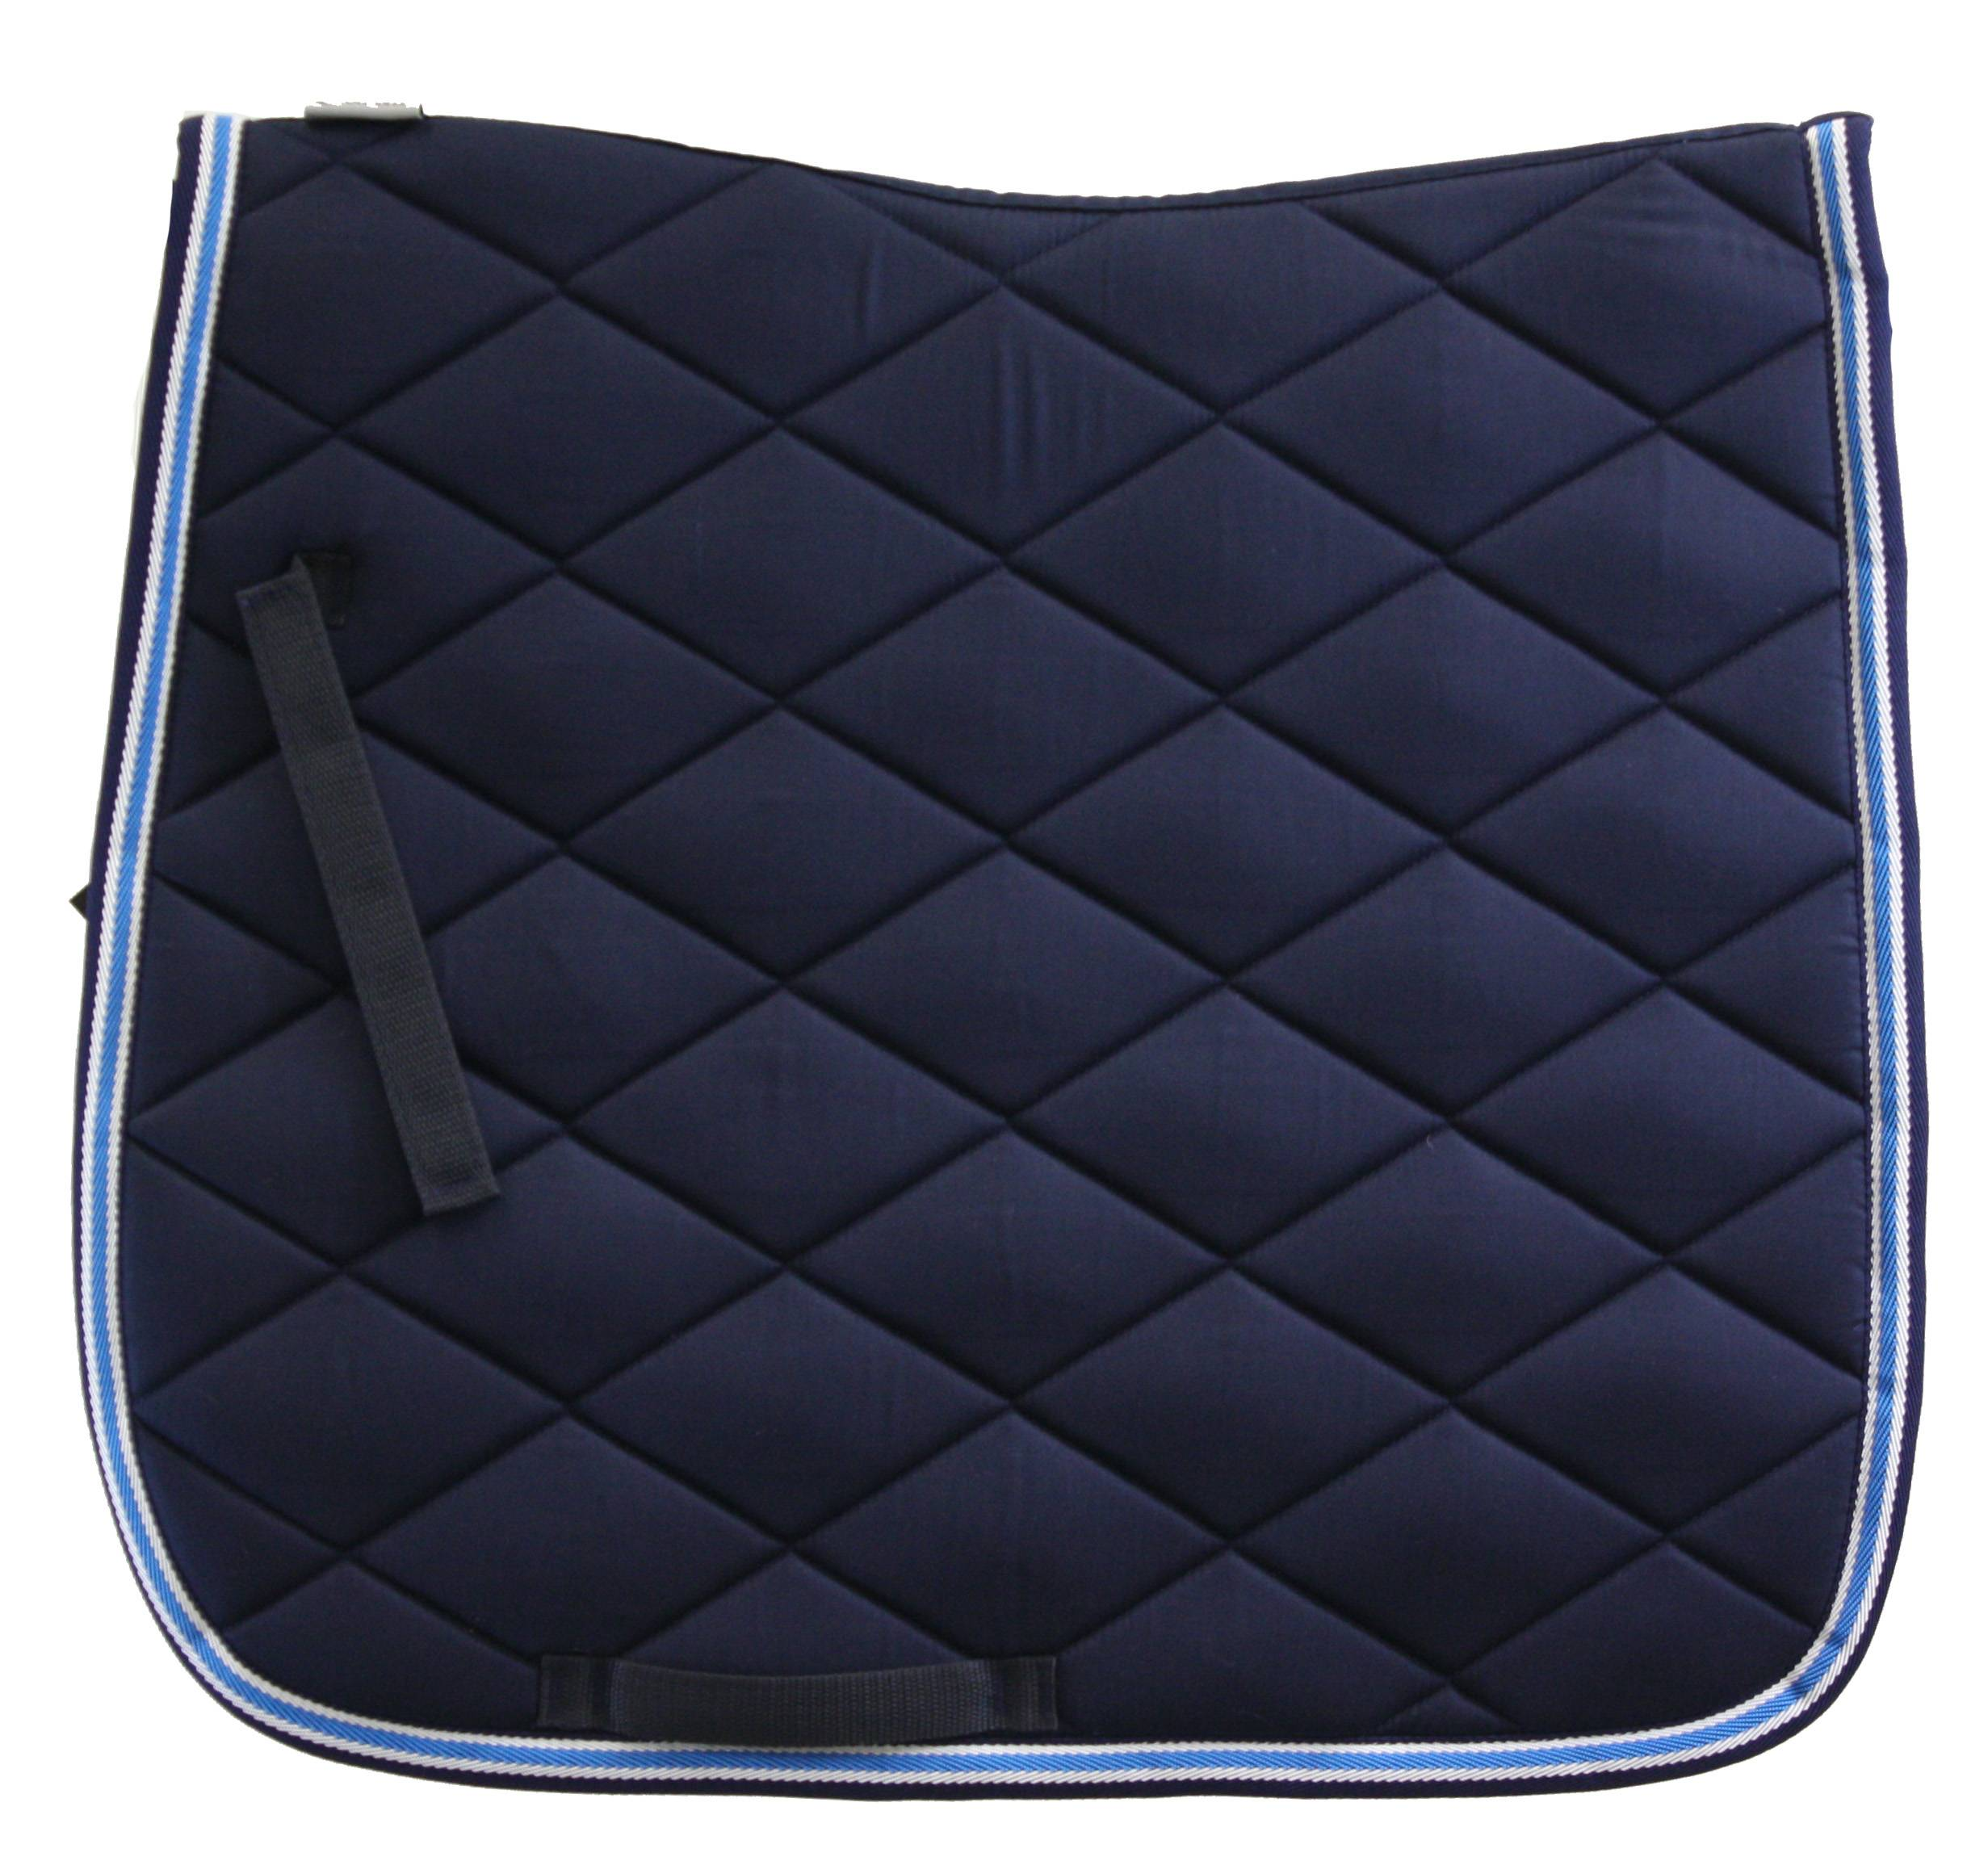 Lami-Cell Diamond Dressage Saddle Pad